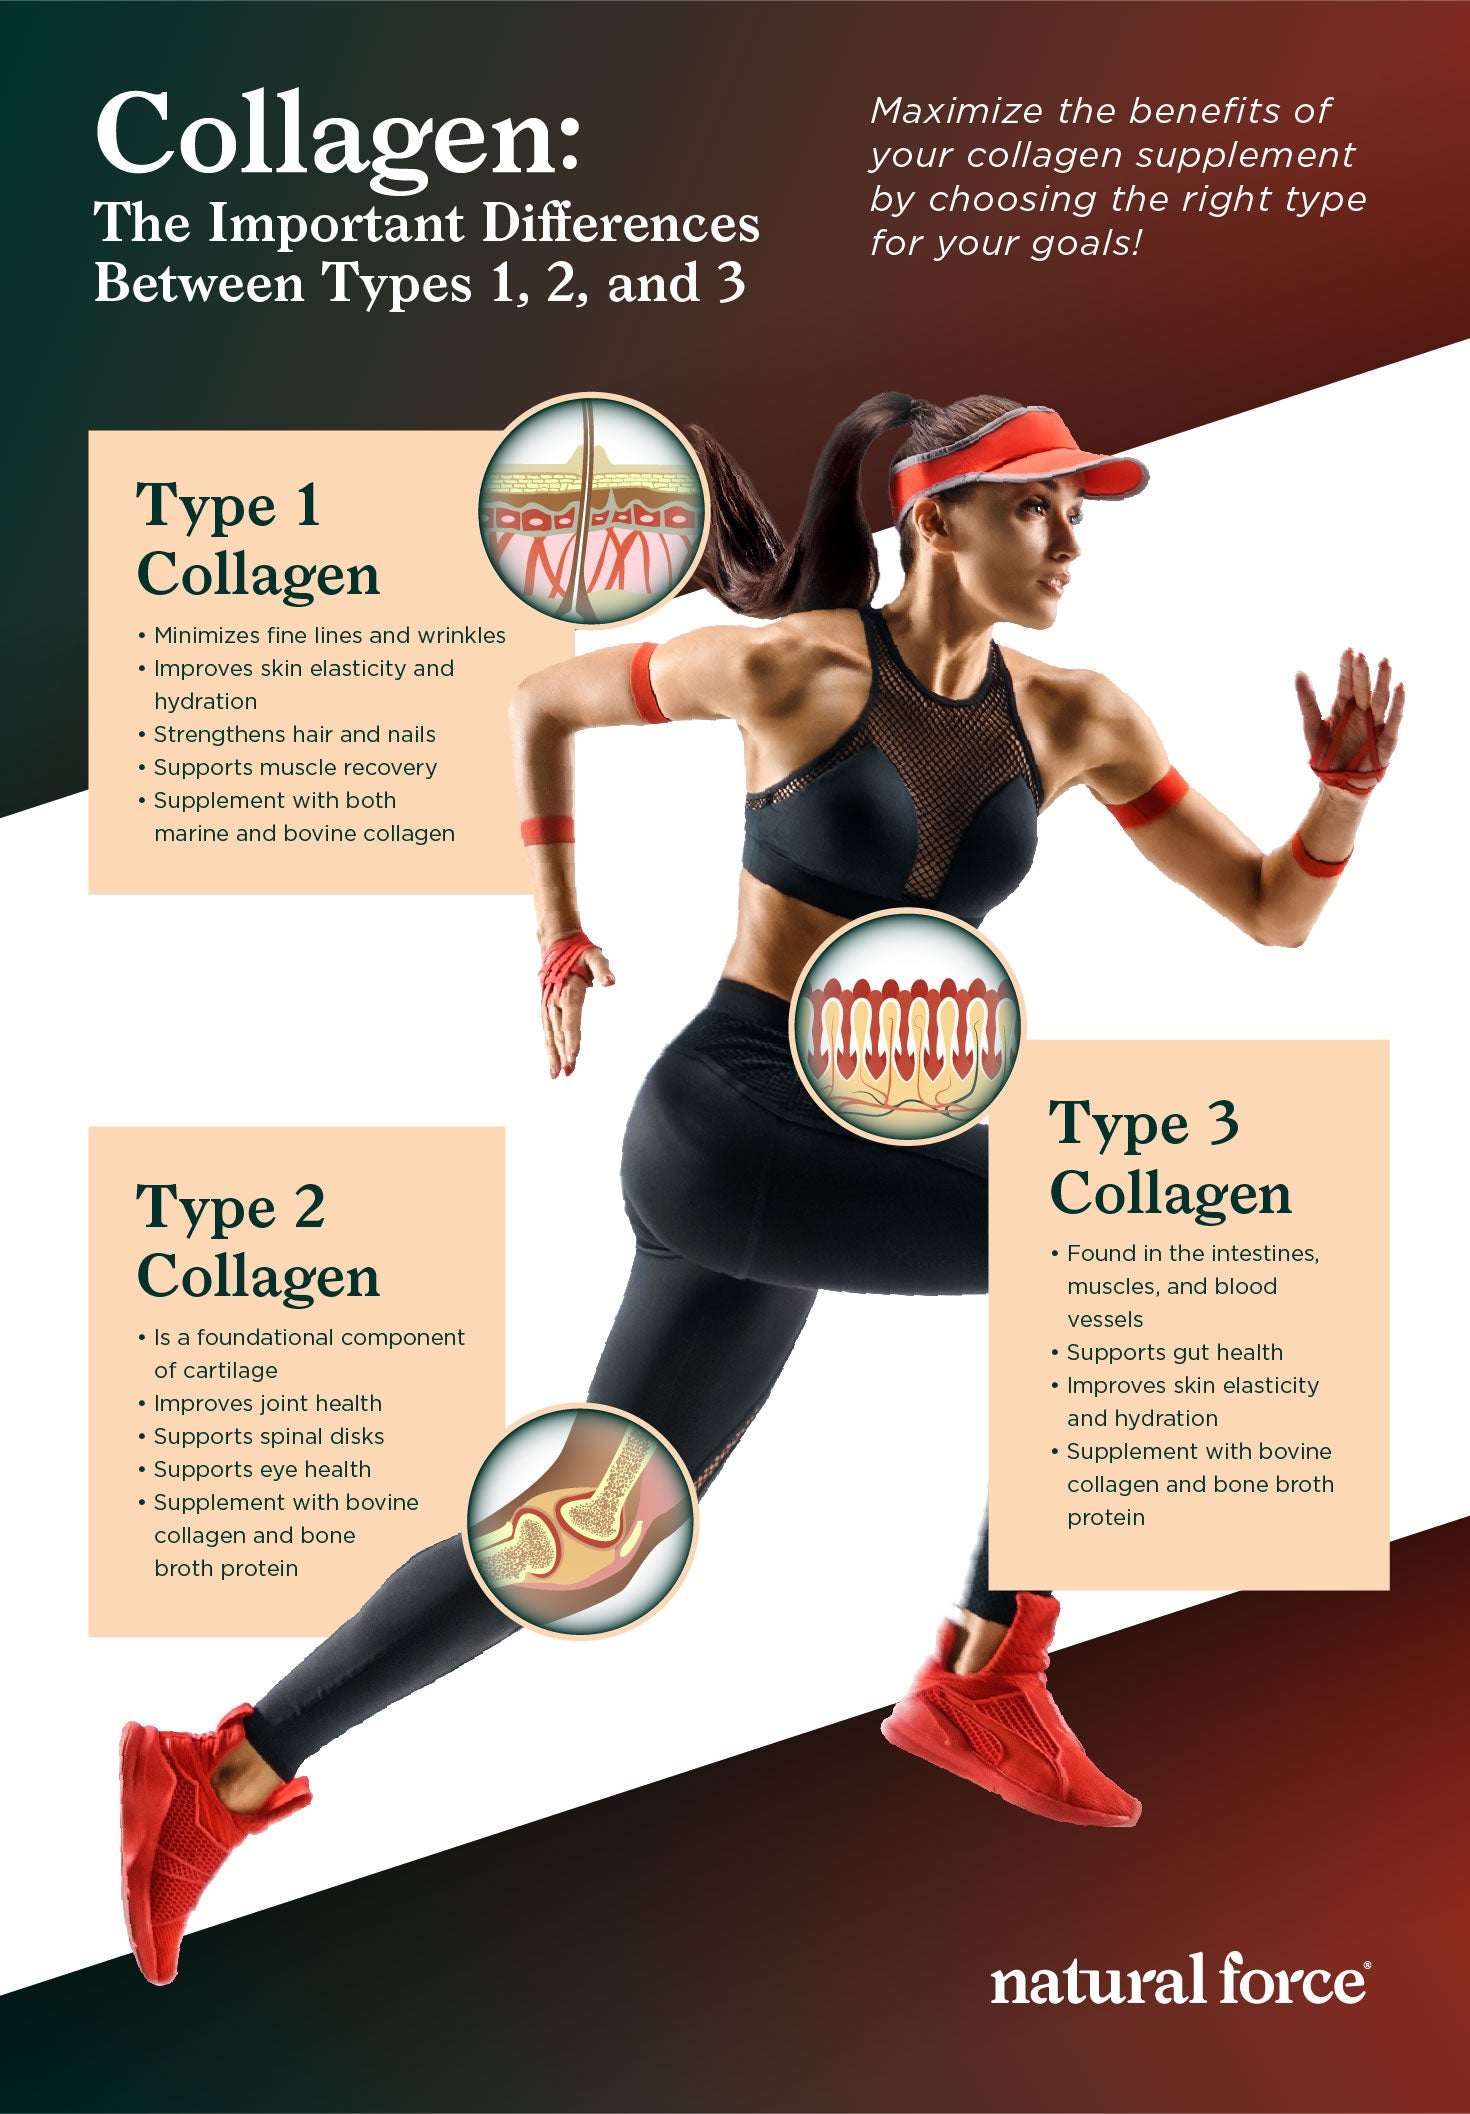 collagen types 1, 2, and 3 infographic